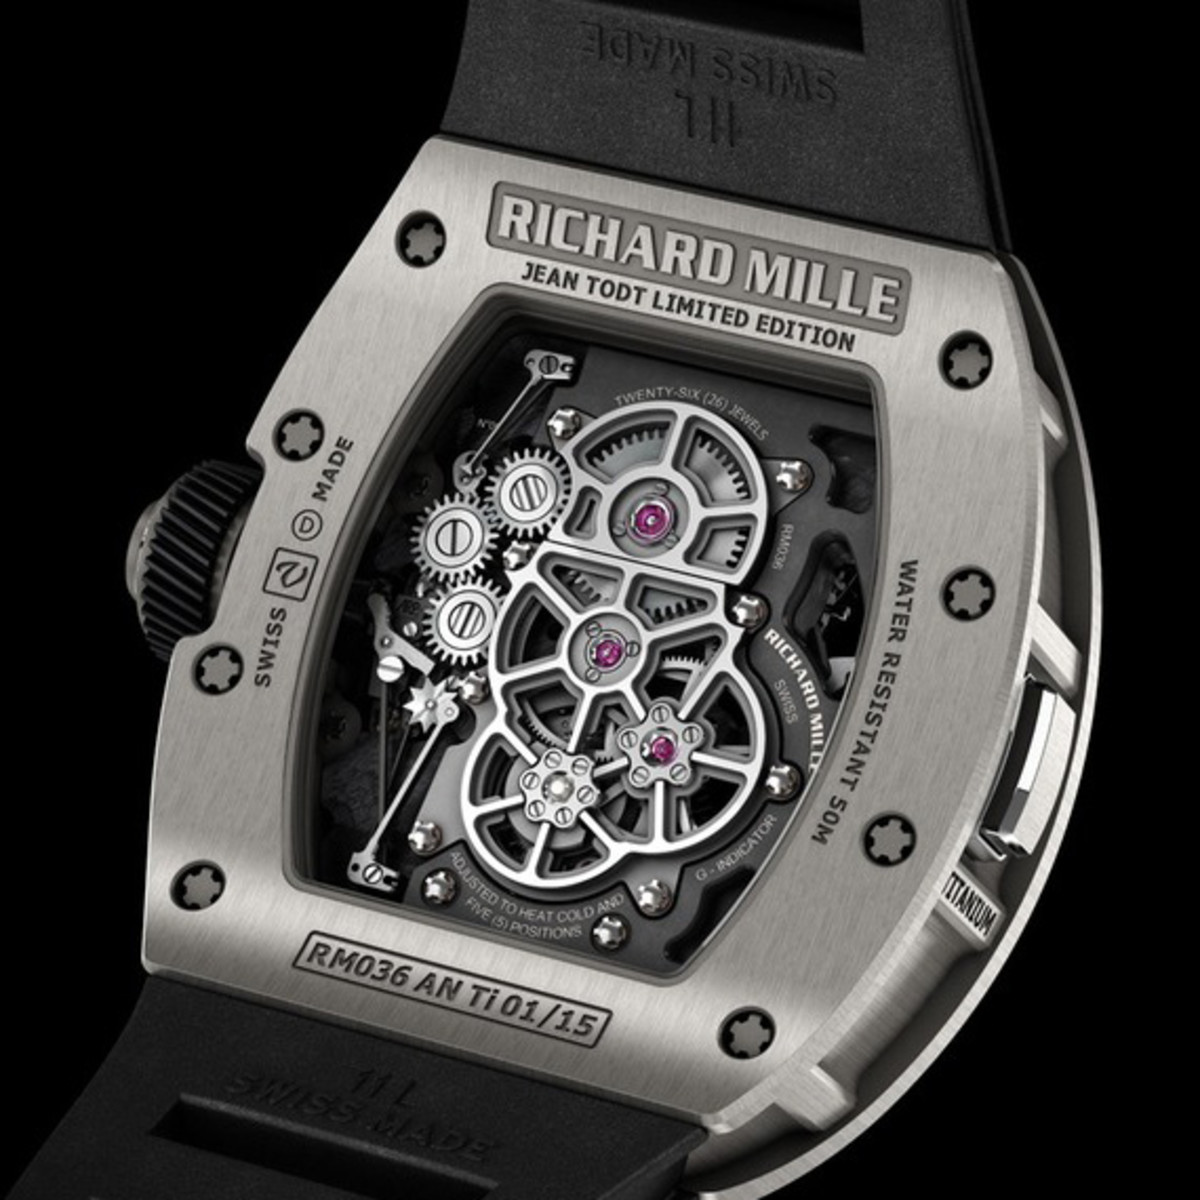 richard-mille-rm036-tourbillon-g-senor-jean-todt-watch-04